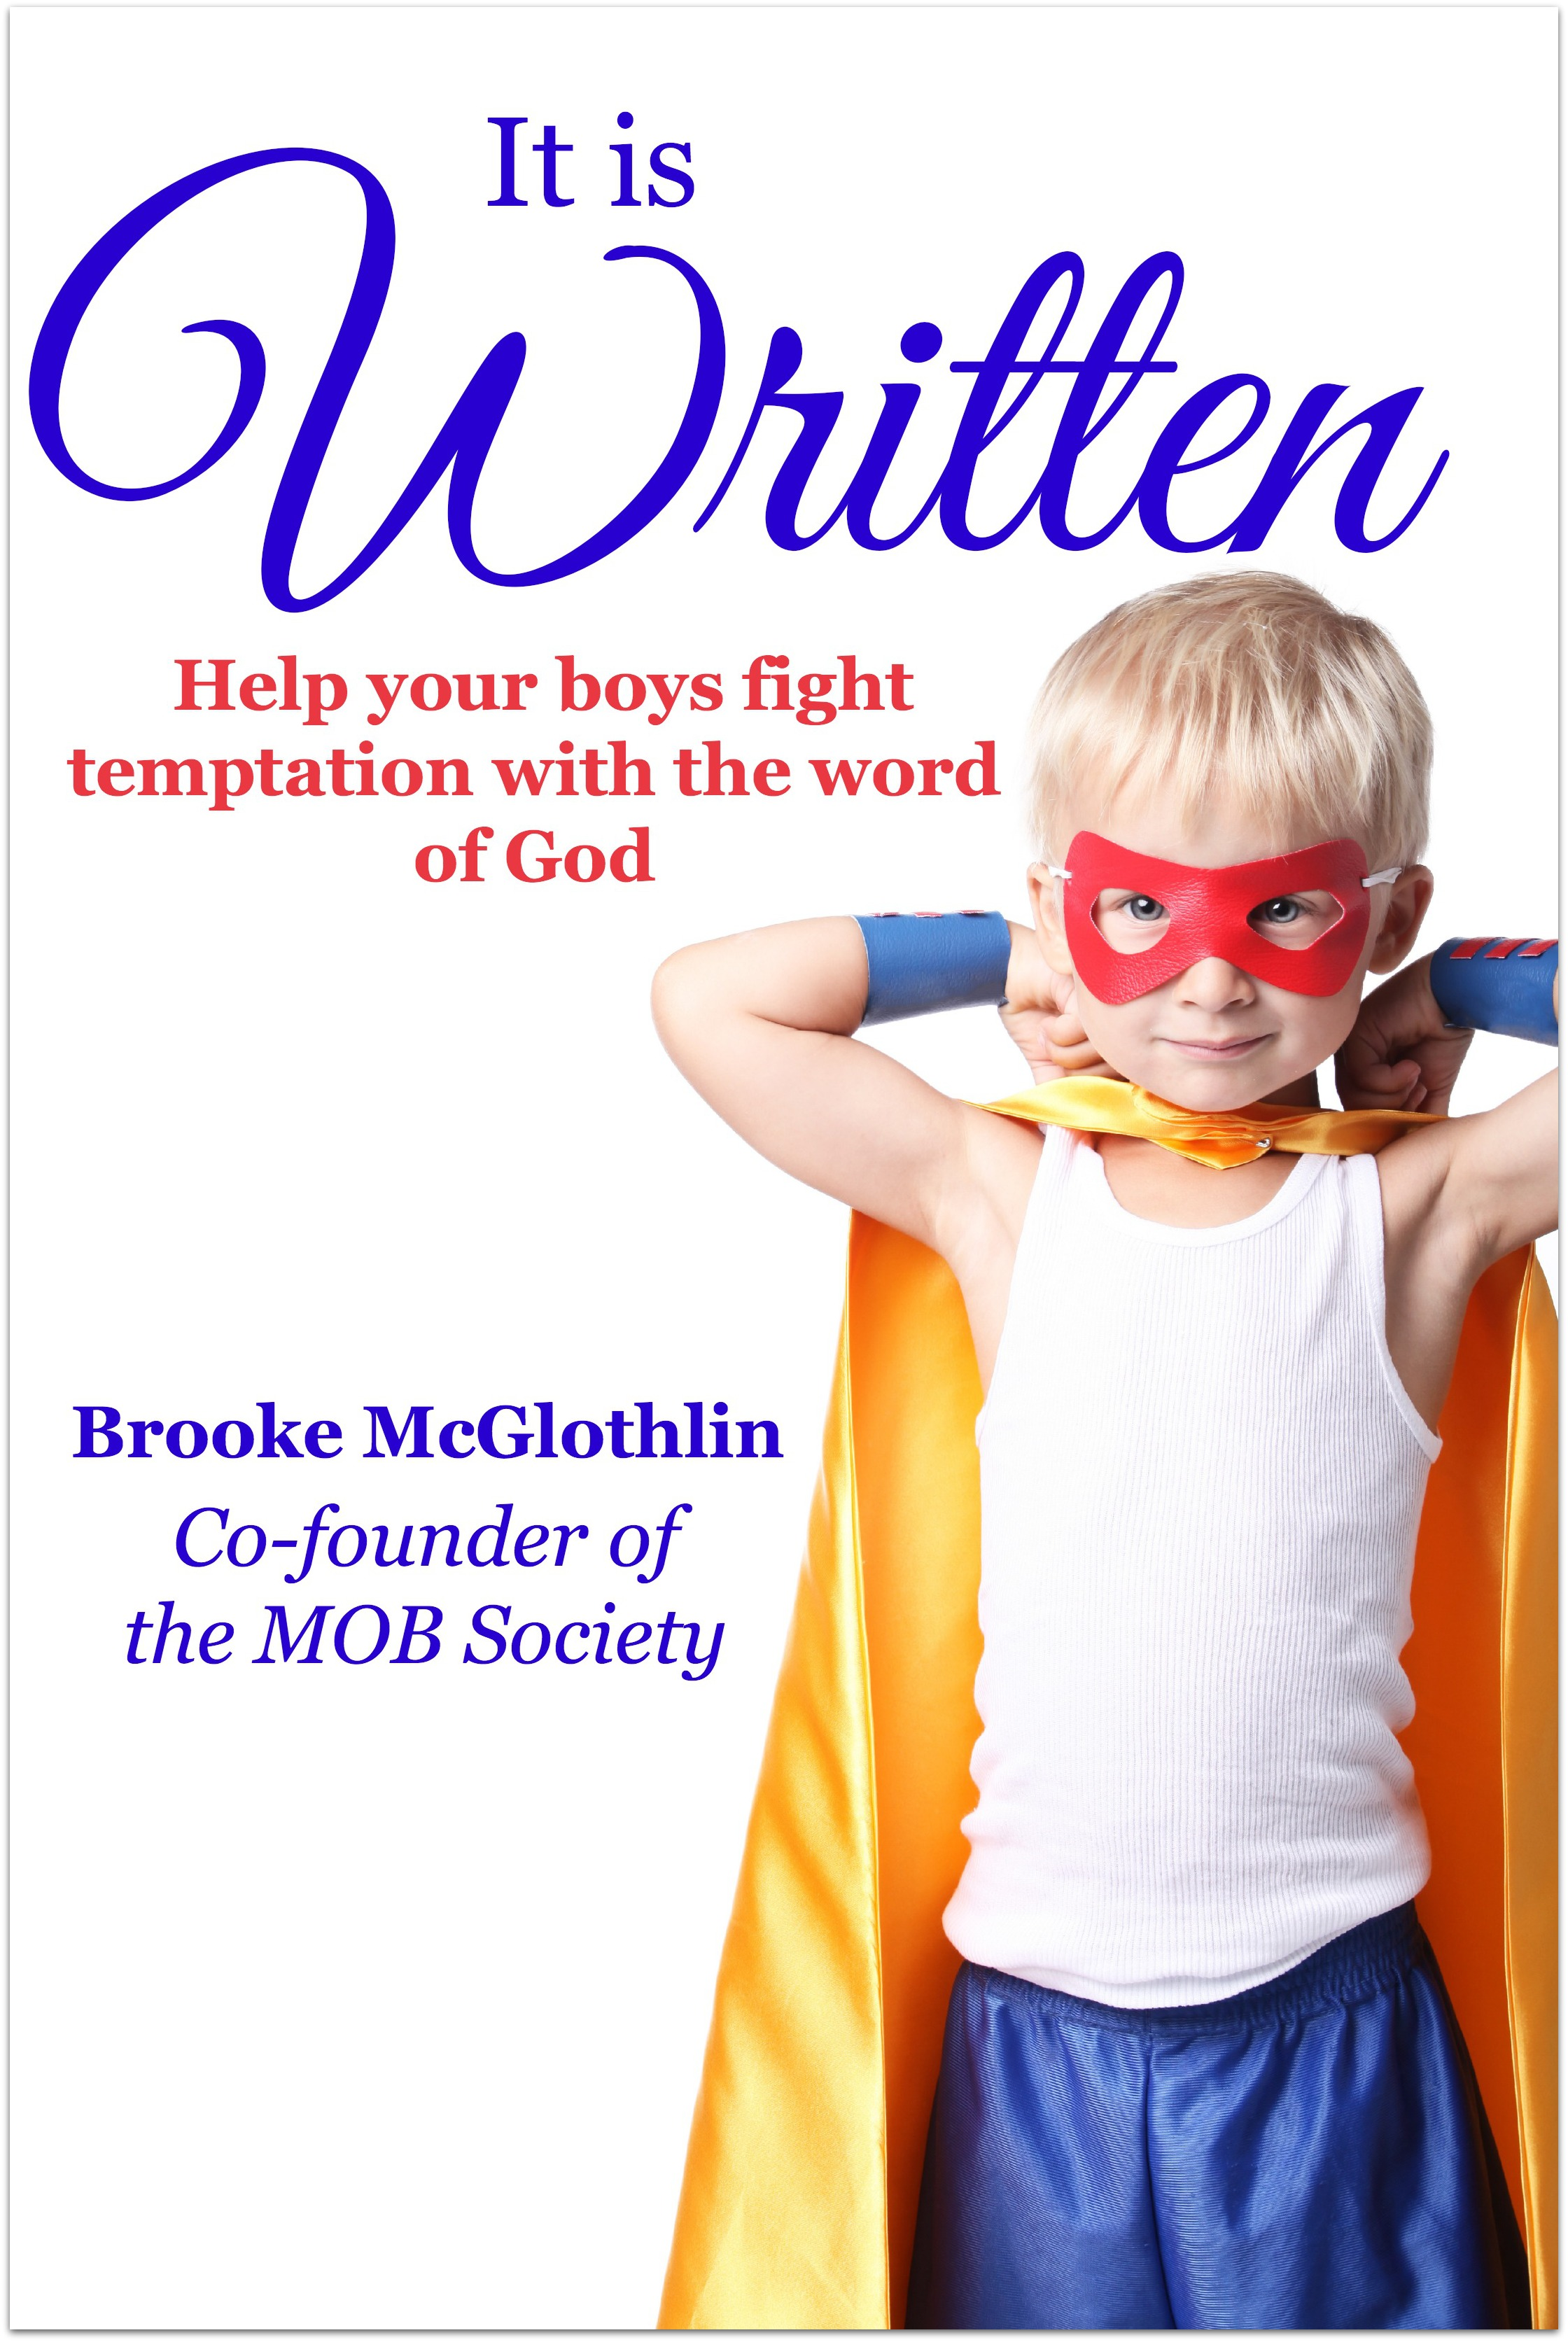 A power-packed resource from Brooke McGlothlin, co-founder of the MOB Society and author of Praying for Boys: Asking God for the Things They Need Most.